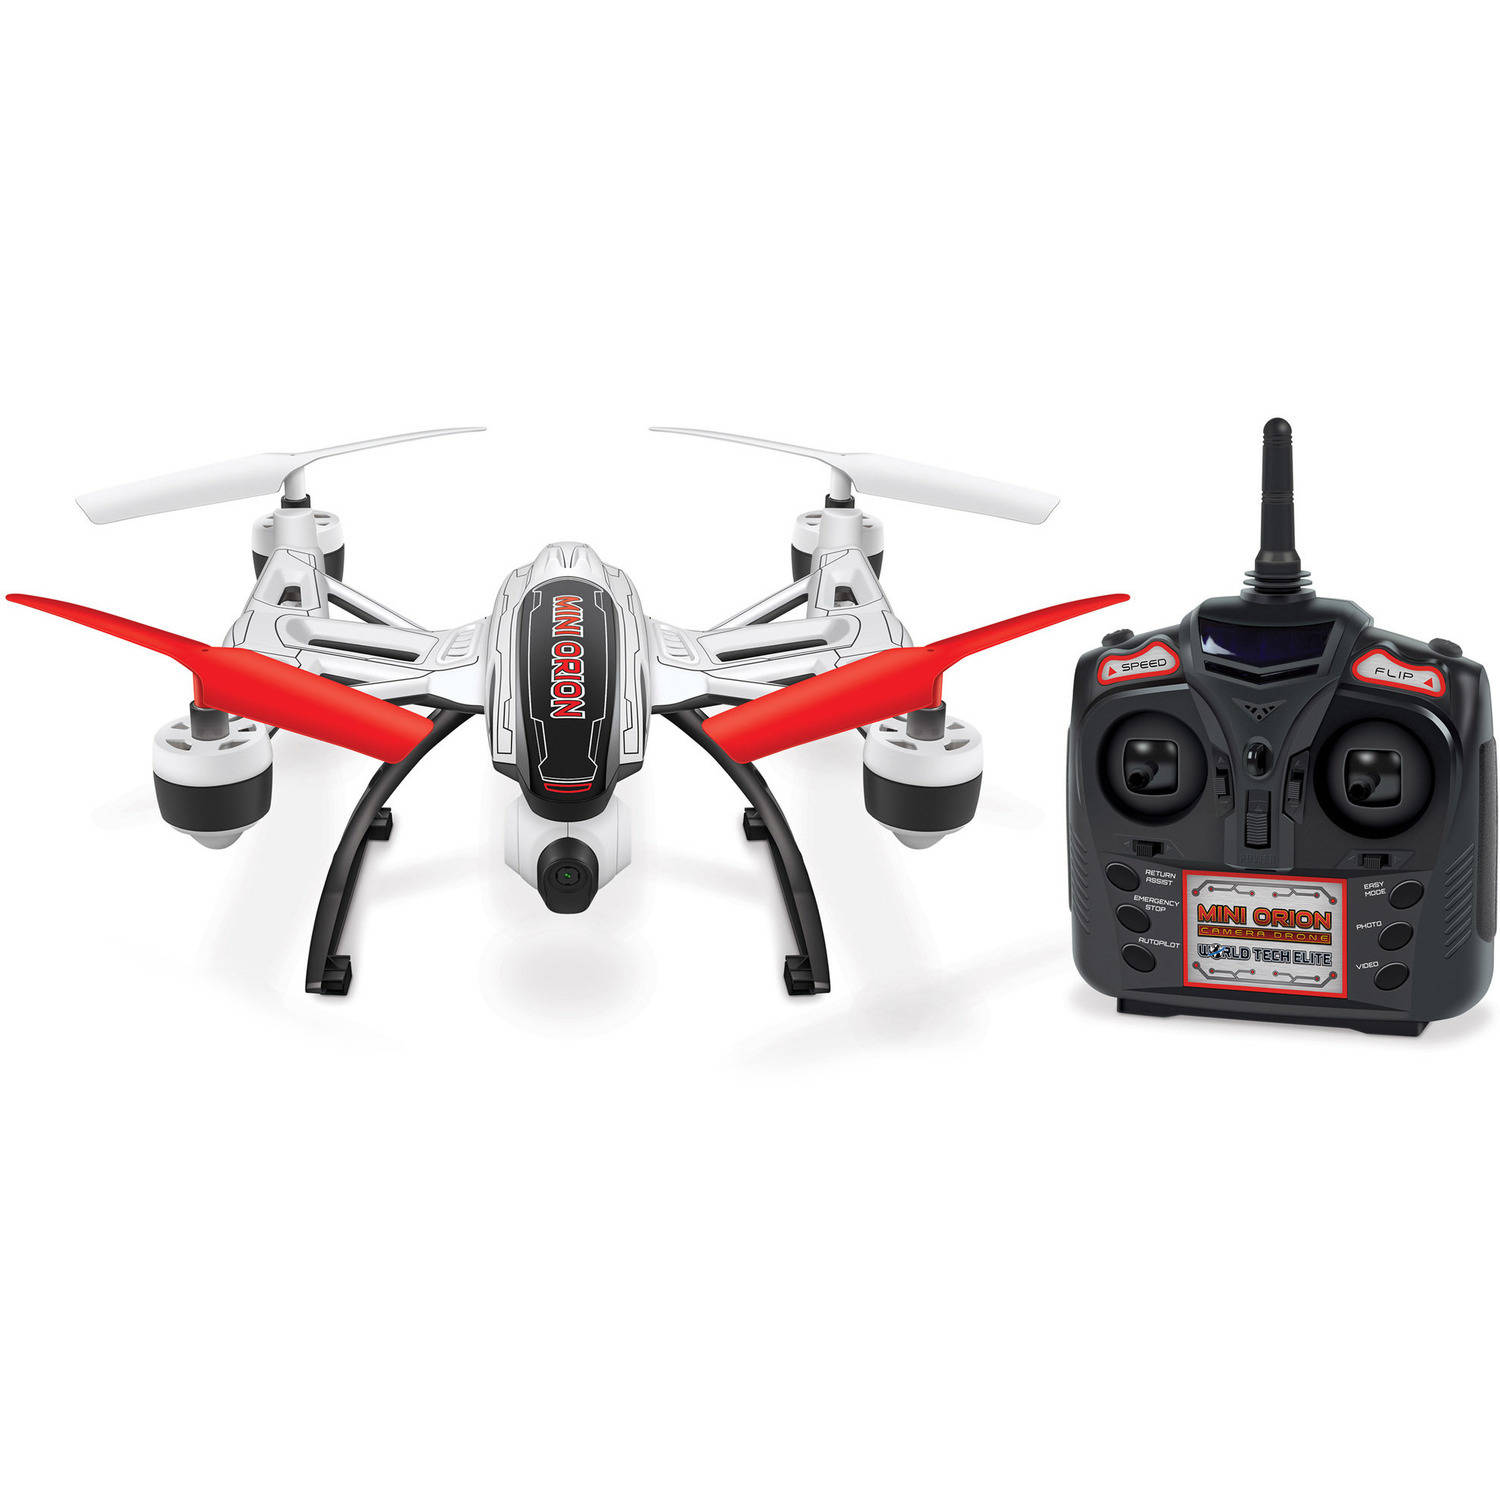 Elite Mini Orion 2.4GHz 4.5-Channel HD R/C Camera Drone